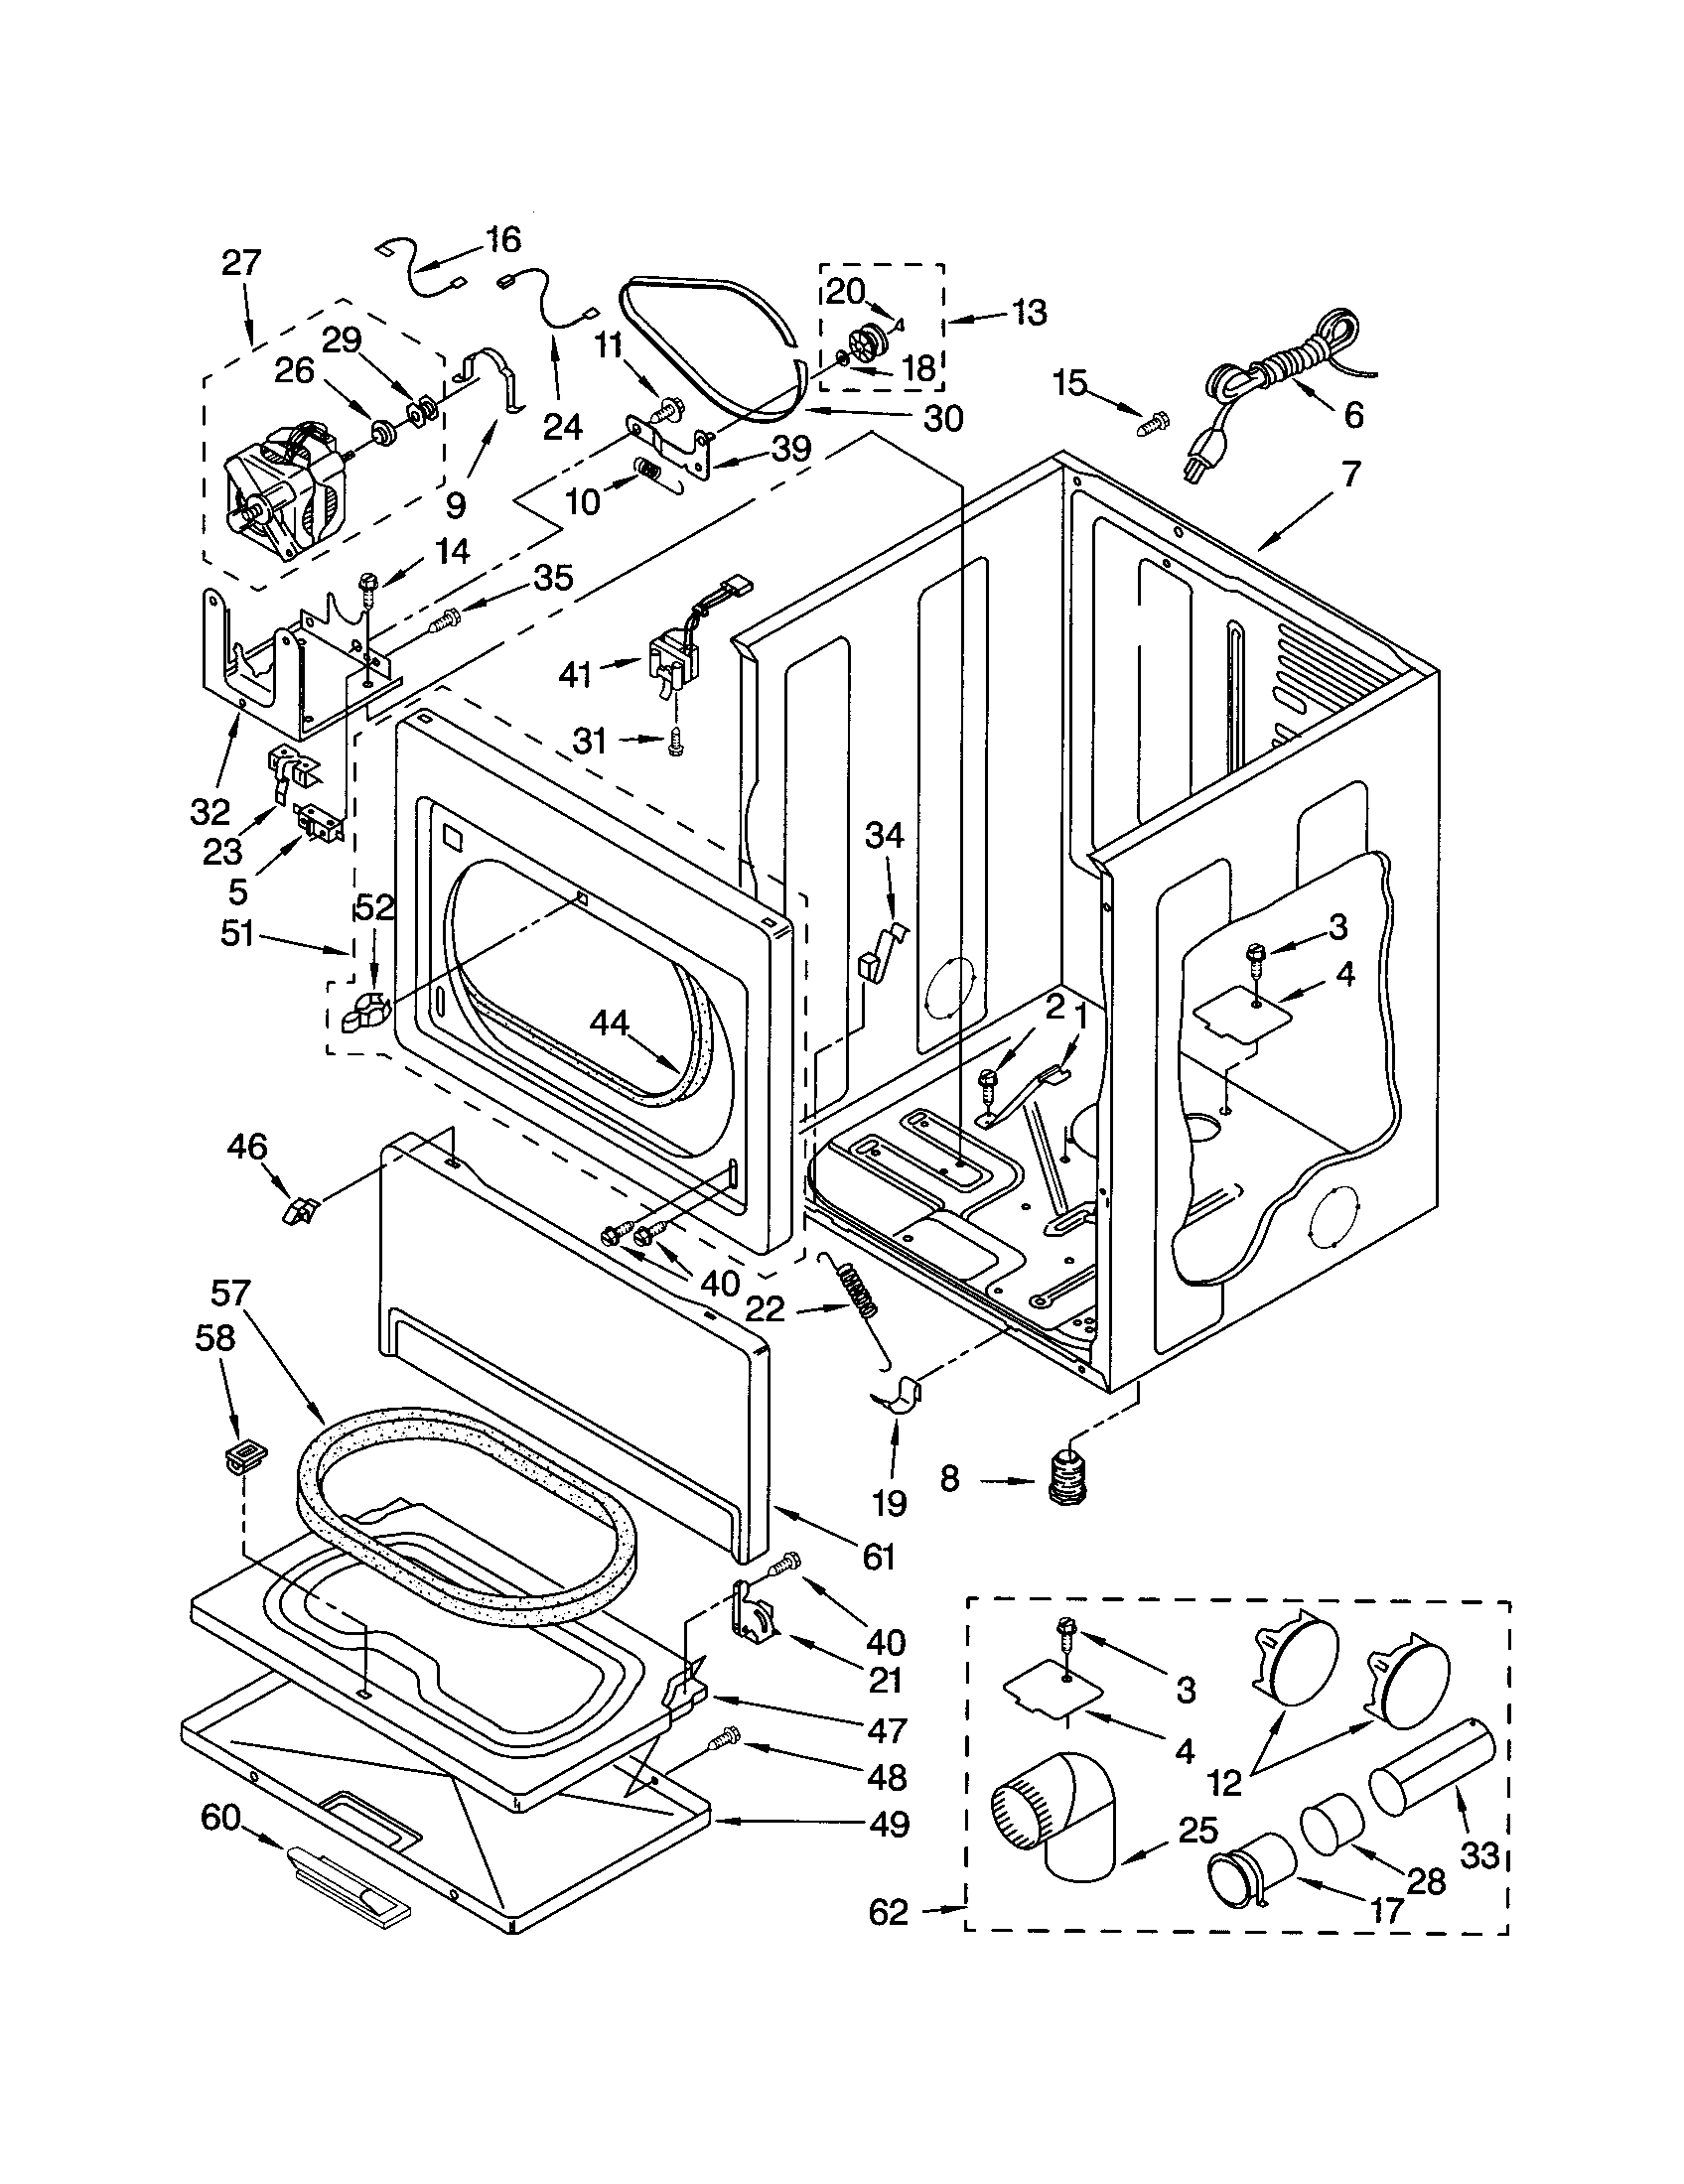 CABINET Diagram & Parts List for Model 11073032101 Kenmore